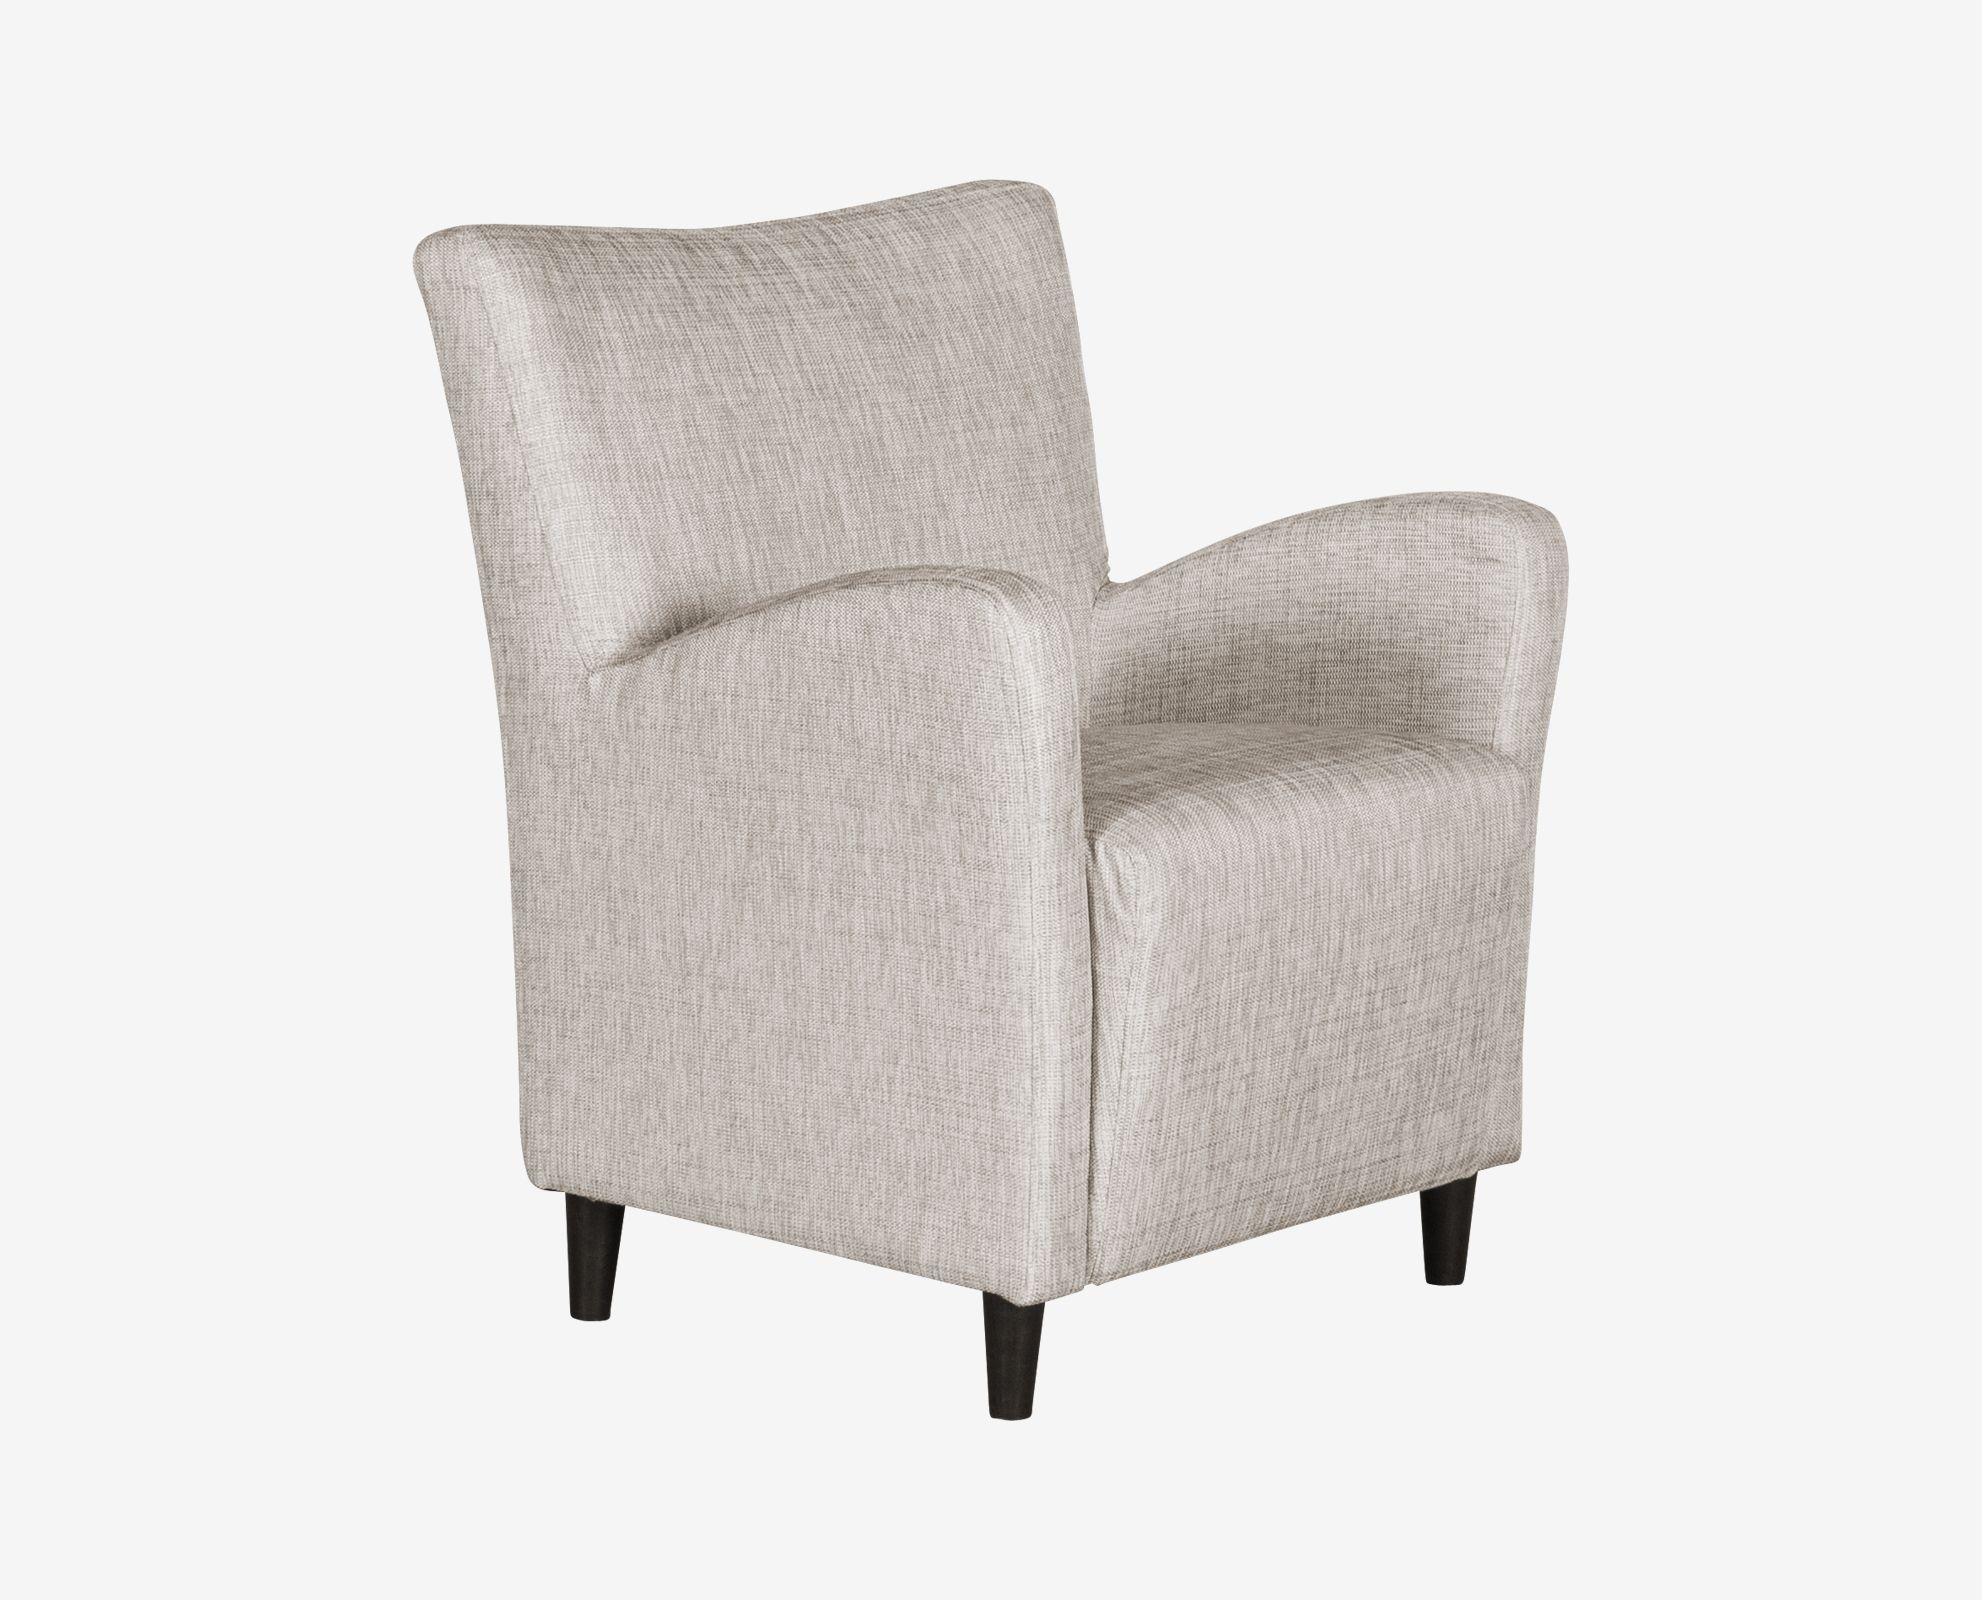 Scandinavian Accent Chair Dania With Elegantly Angled Arms And Tapered Legs The